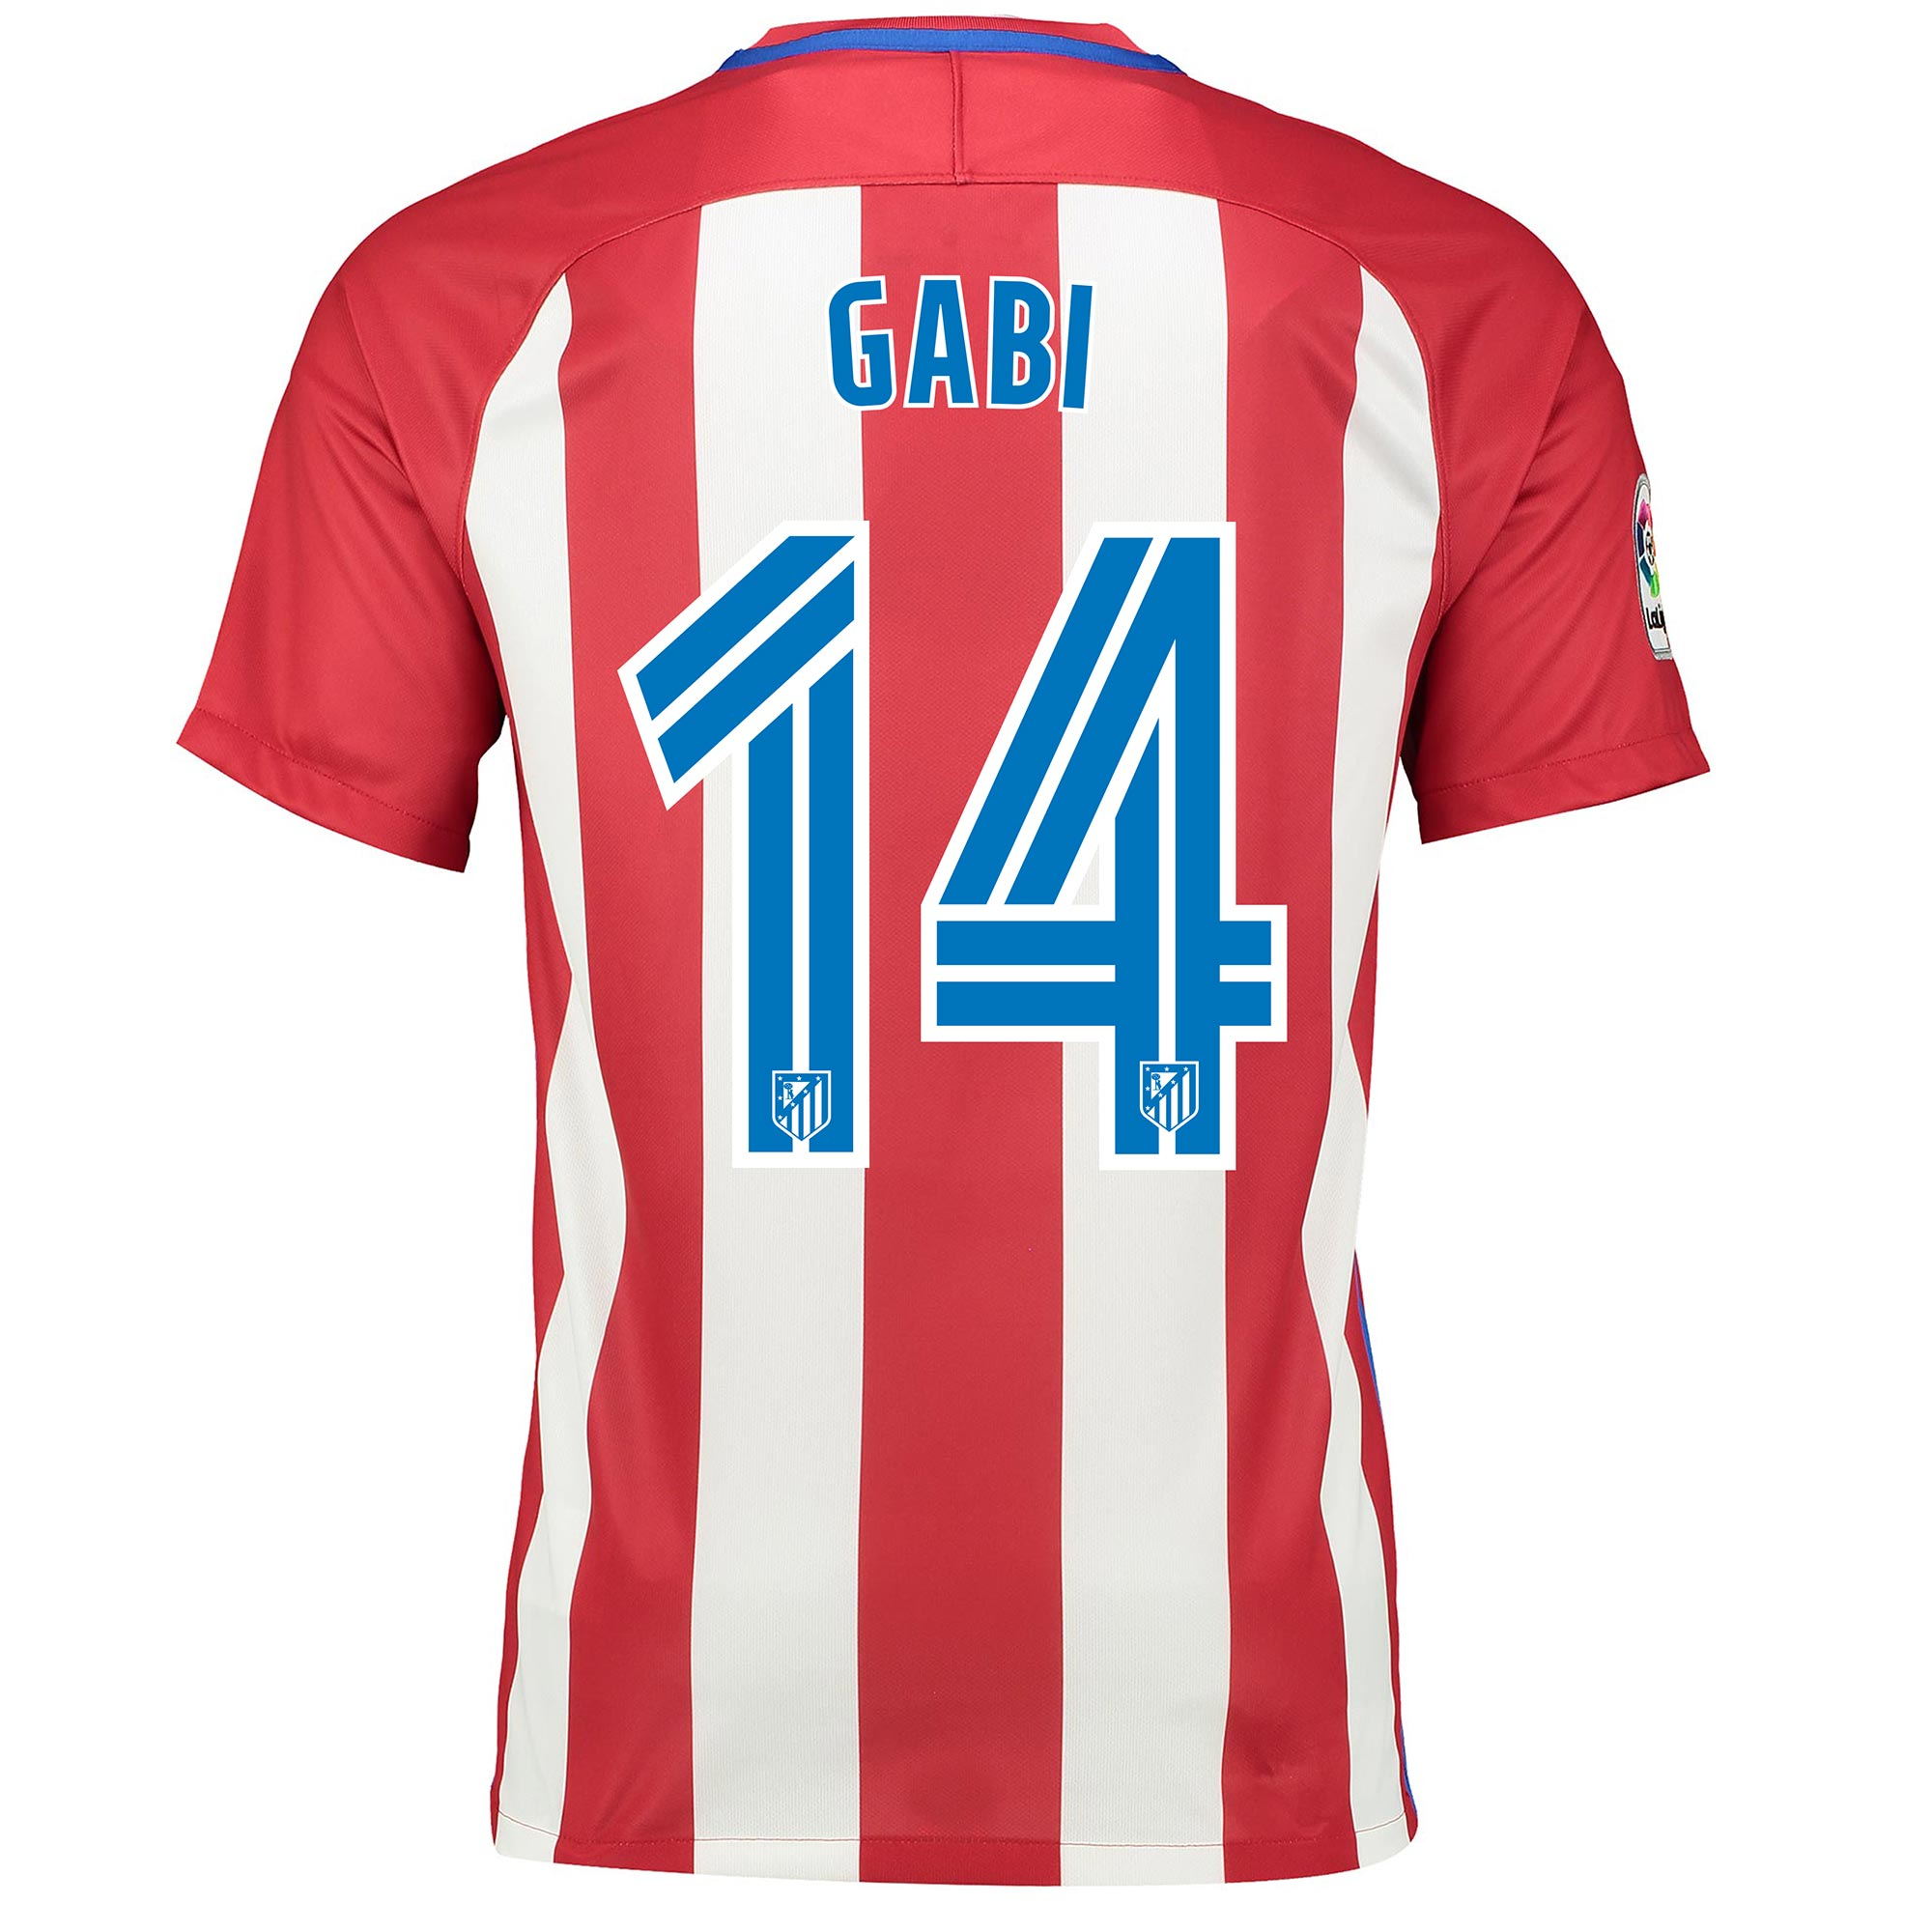 Image of Atletico Madrid Home Shirt 2016-17 with Gabi 14 printing, Red/White